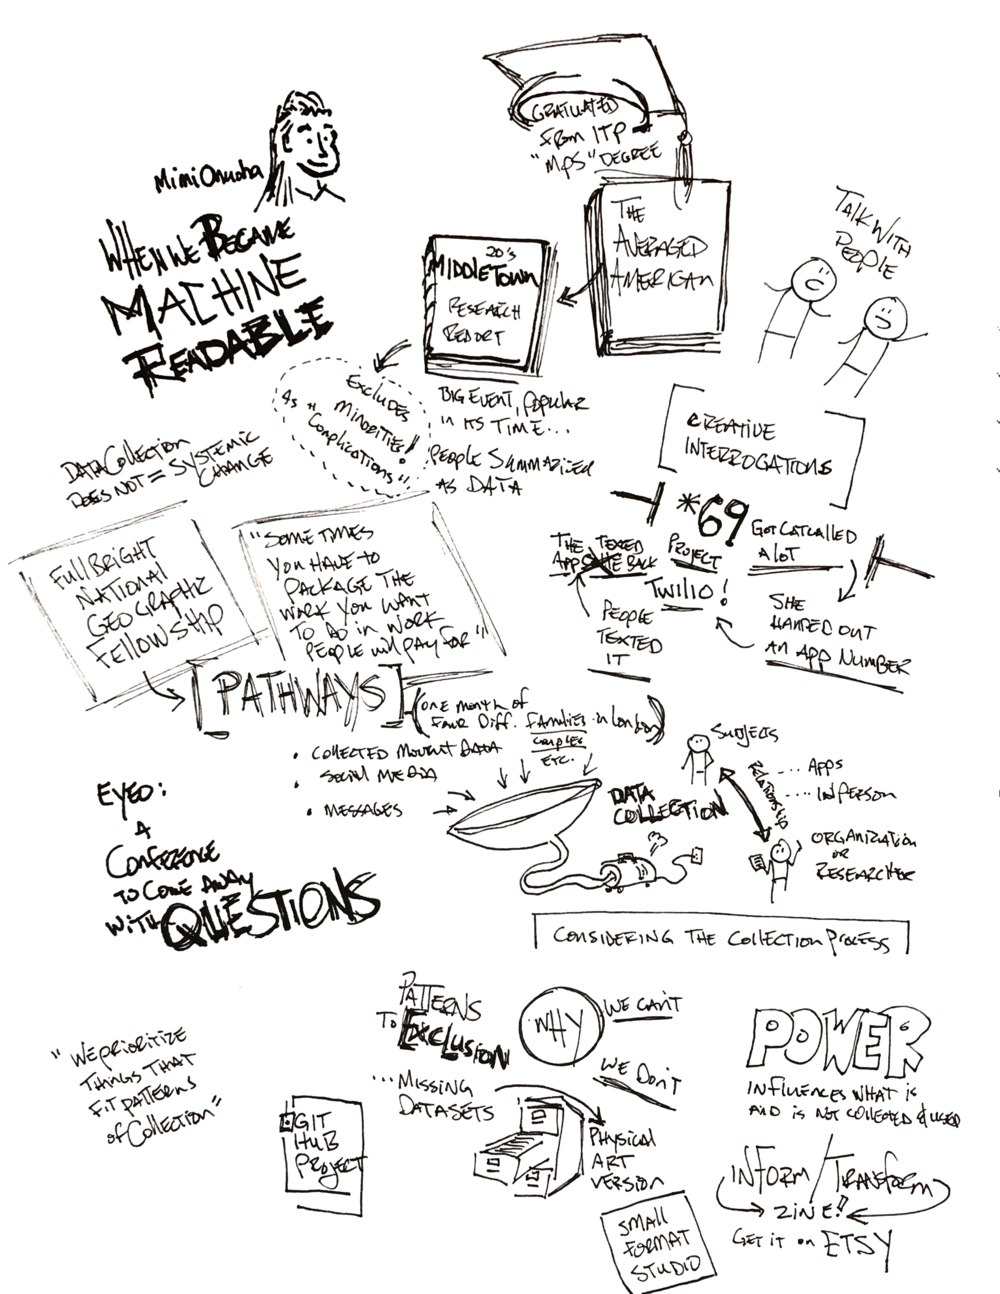 3 - Mimi Onuoha - When We Became Machine Readable.png